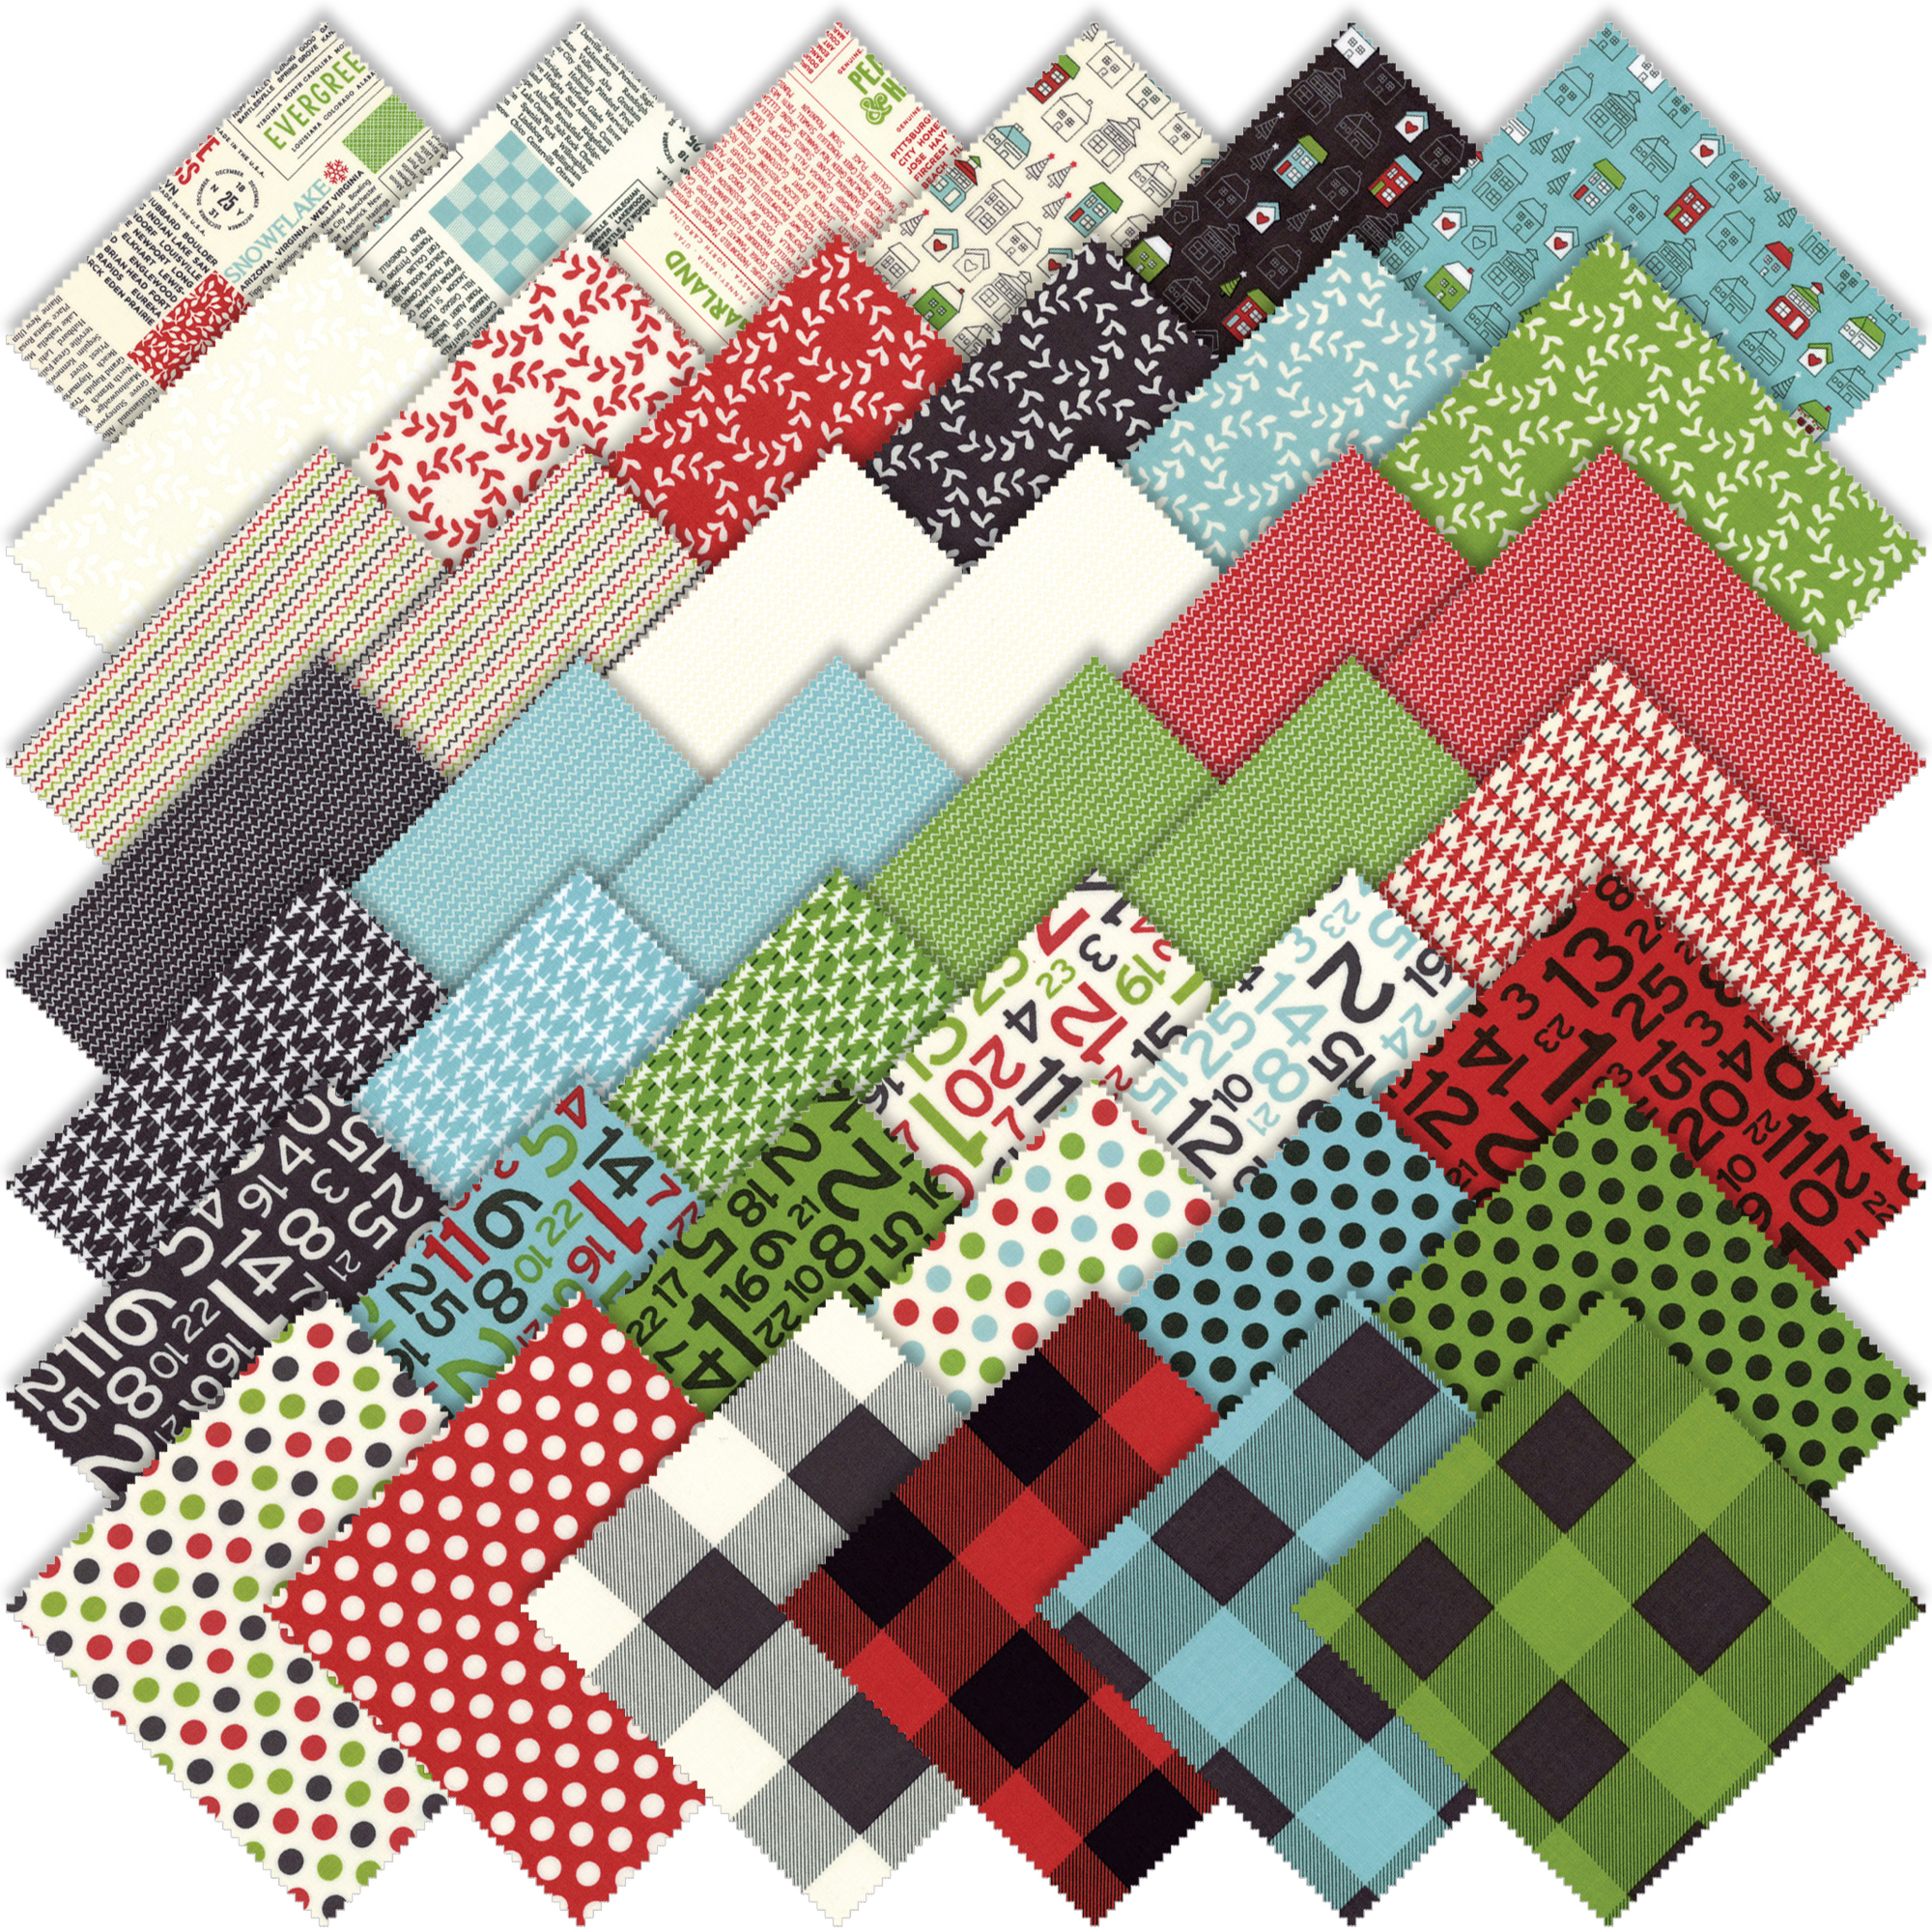 Moda Christmas Fabric 2019 Moda Hometown Christmas Edition Layer Cake by Sweetwater 5660LC